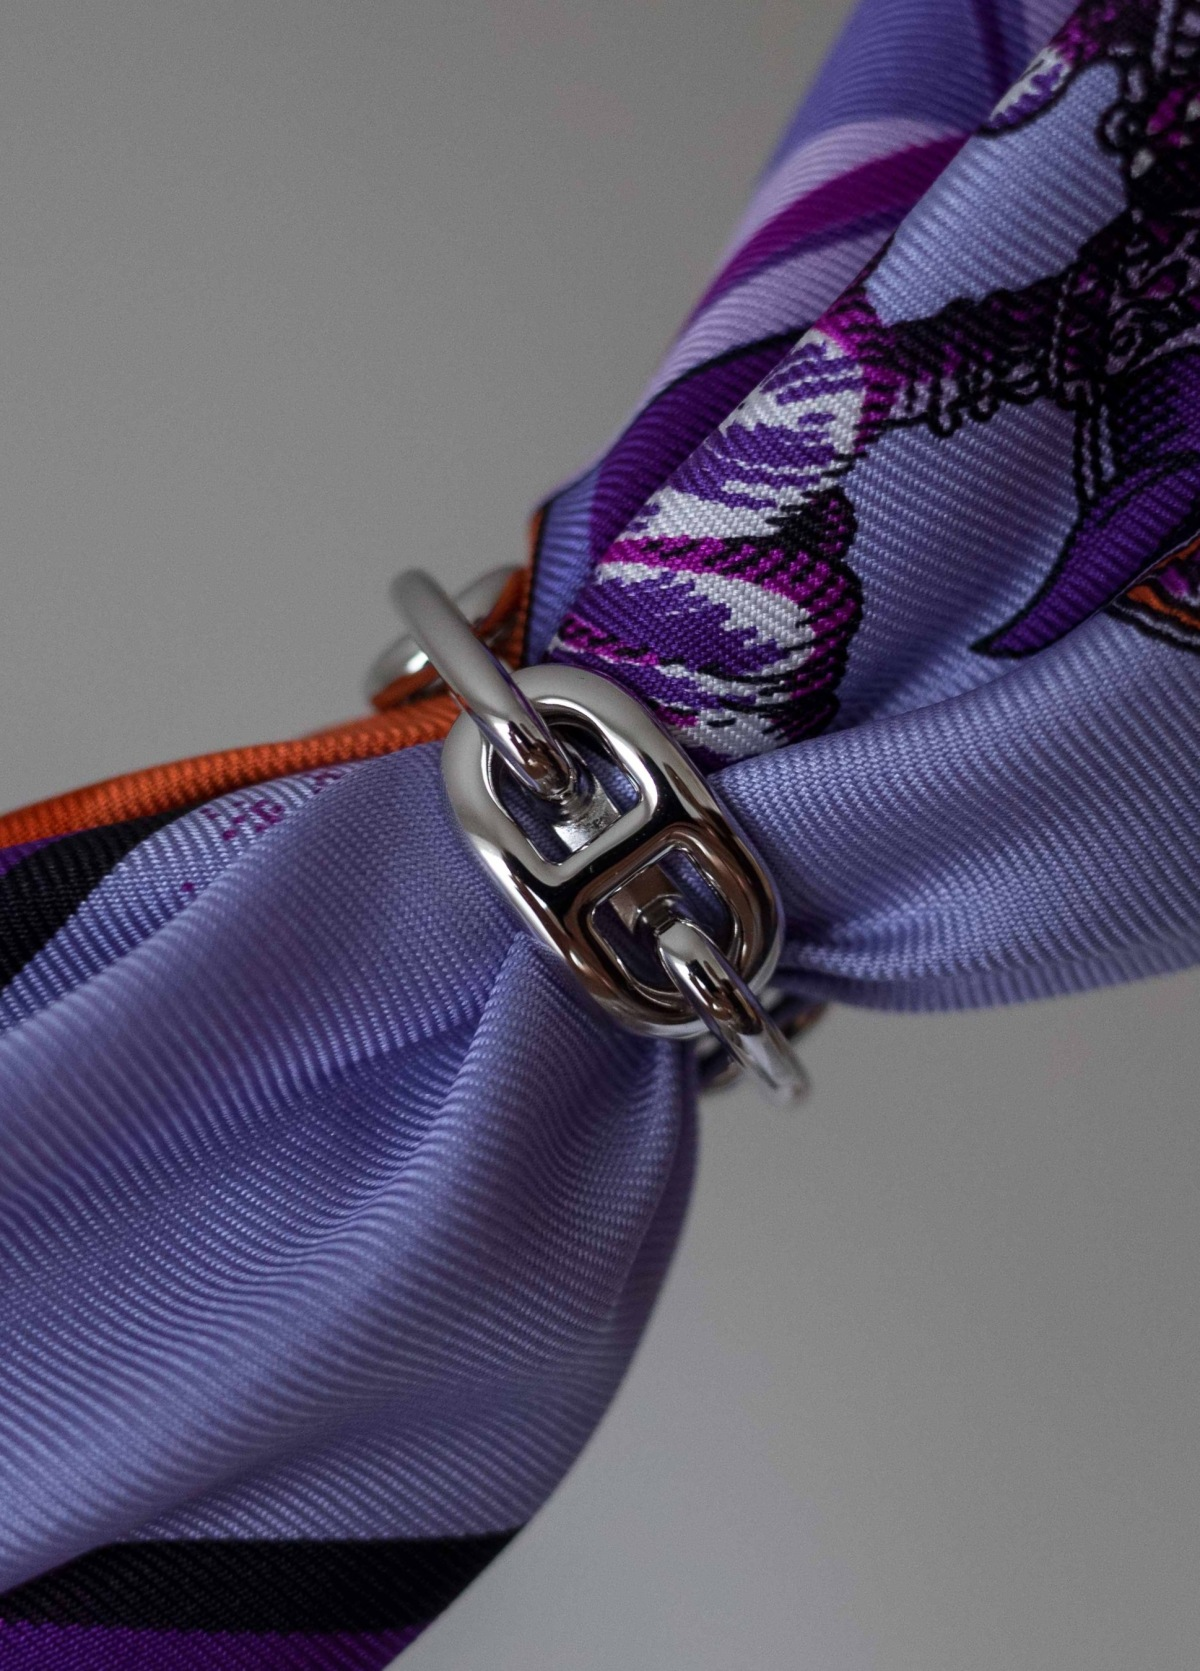 Hermes scarf, Grand Apparat, regate scarf ring, knot, knotting, tutorial, hermes carre, Hermes Schal, эрмес, платок, карре, как красиво завязать платок, how to wear a scarf